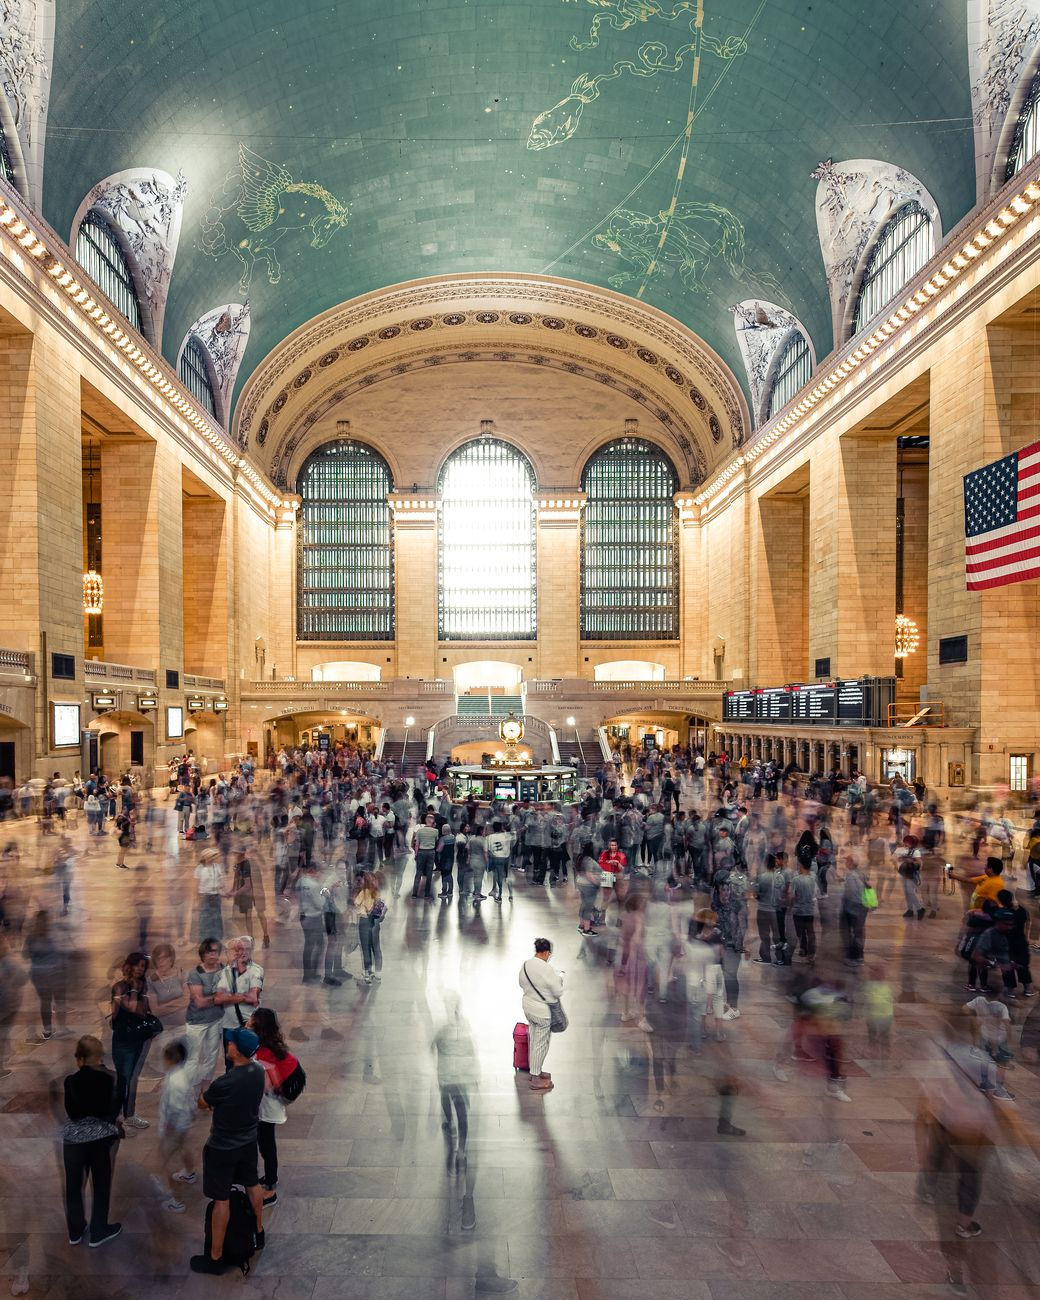 View into the main hall of the Grand Central Station in New York-multiexposure picture